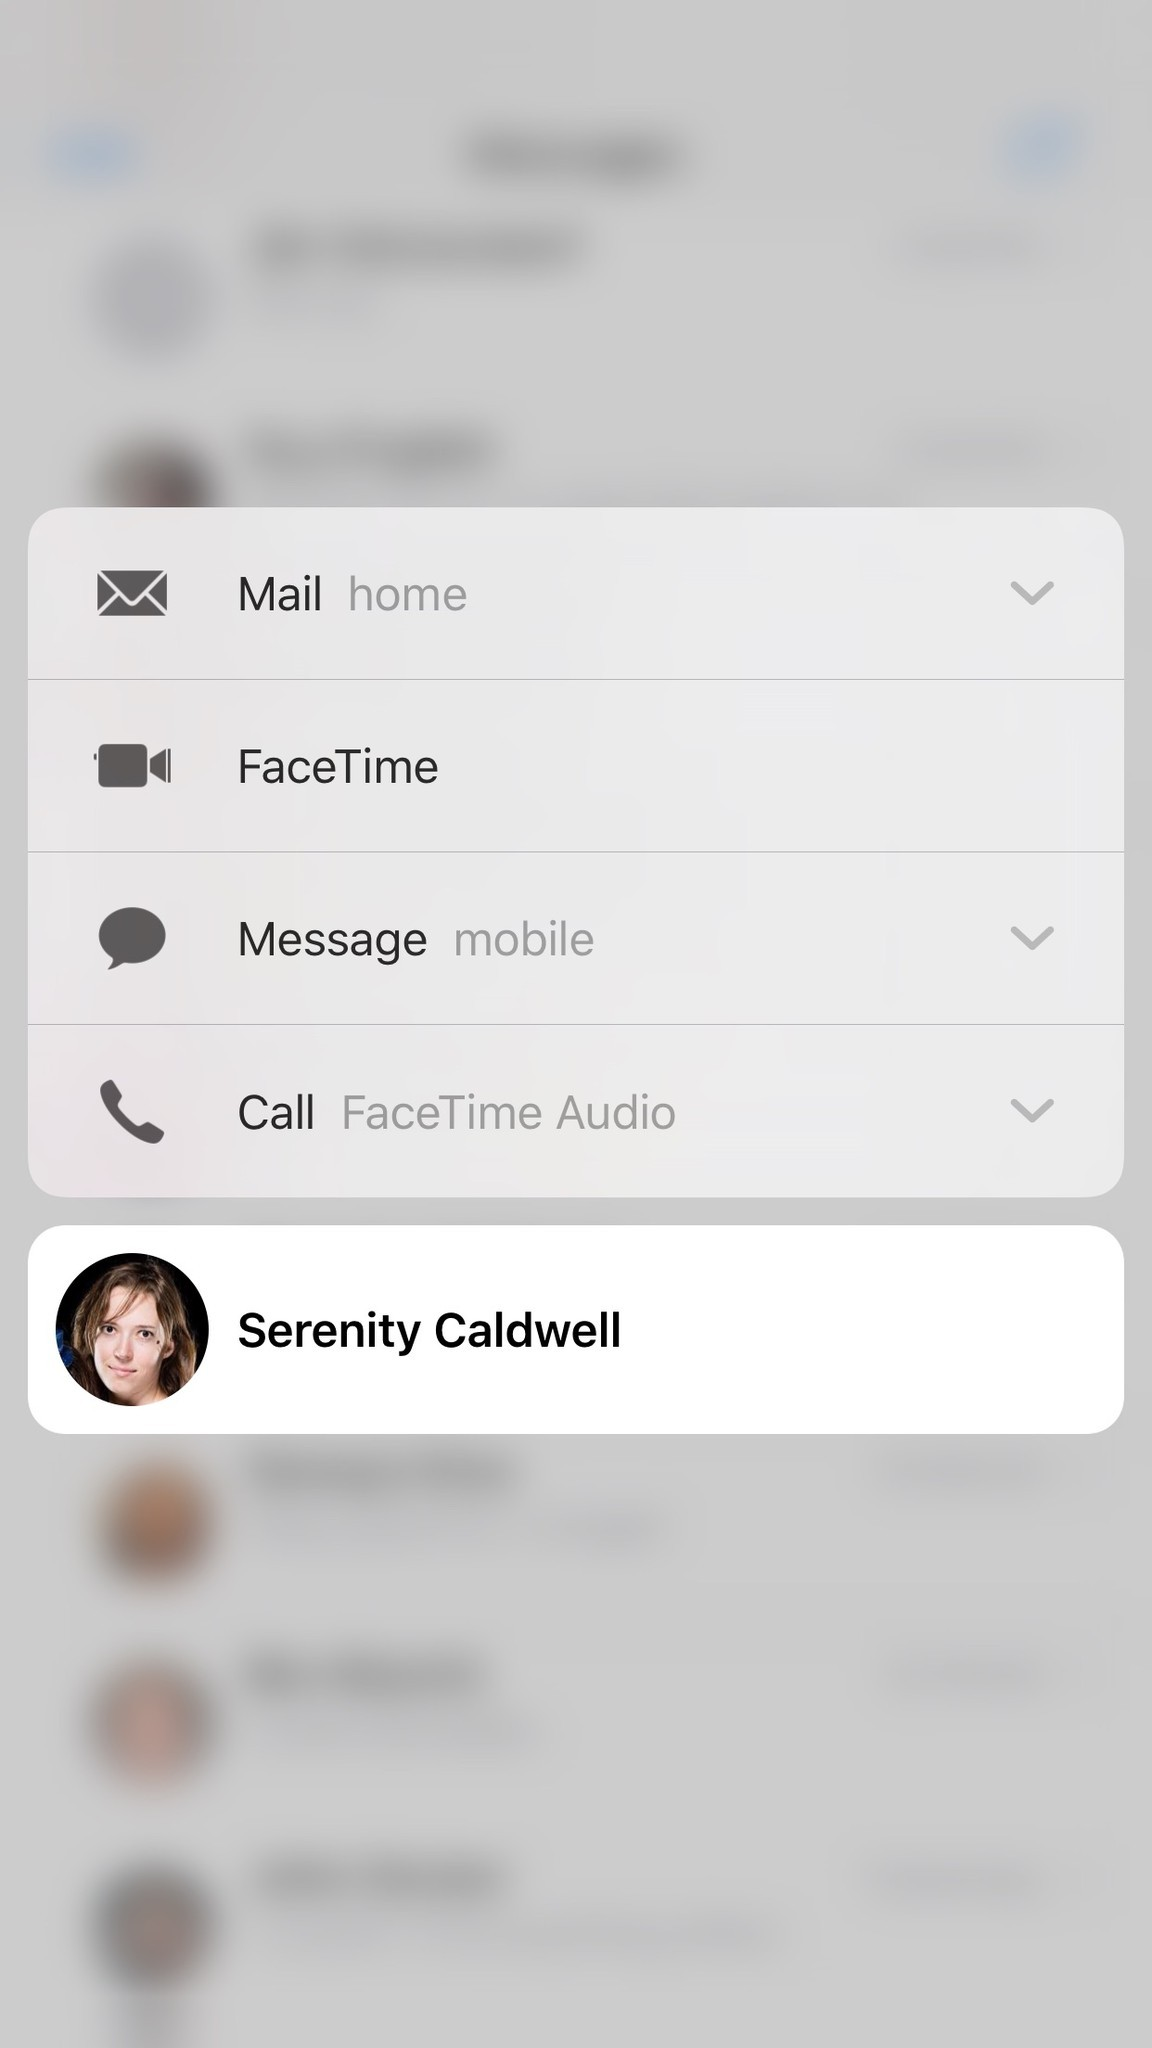 3D Touch on a profile pic to get contact details